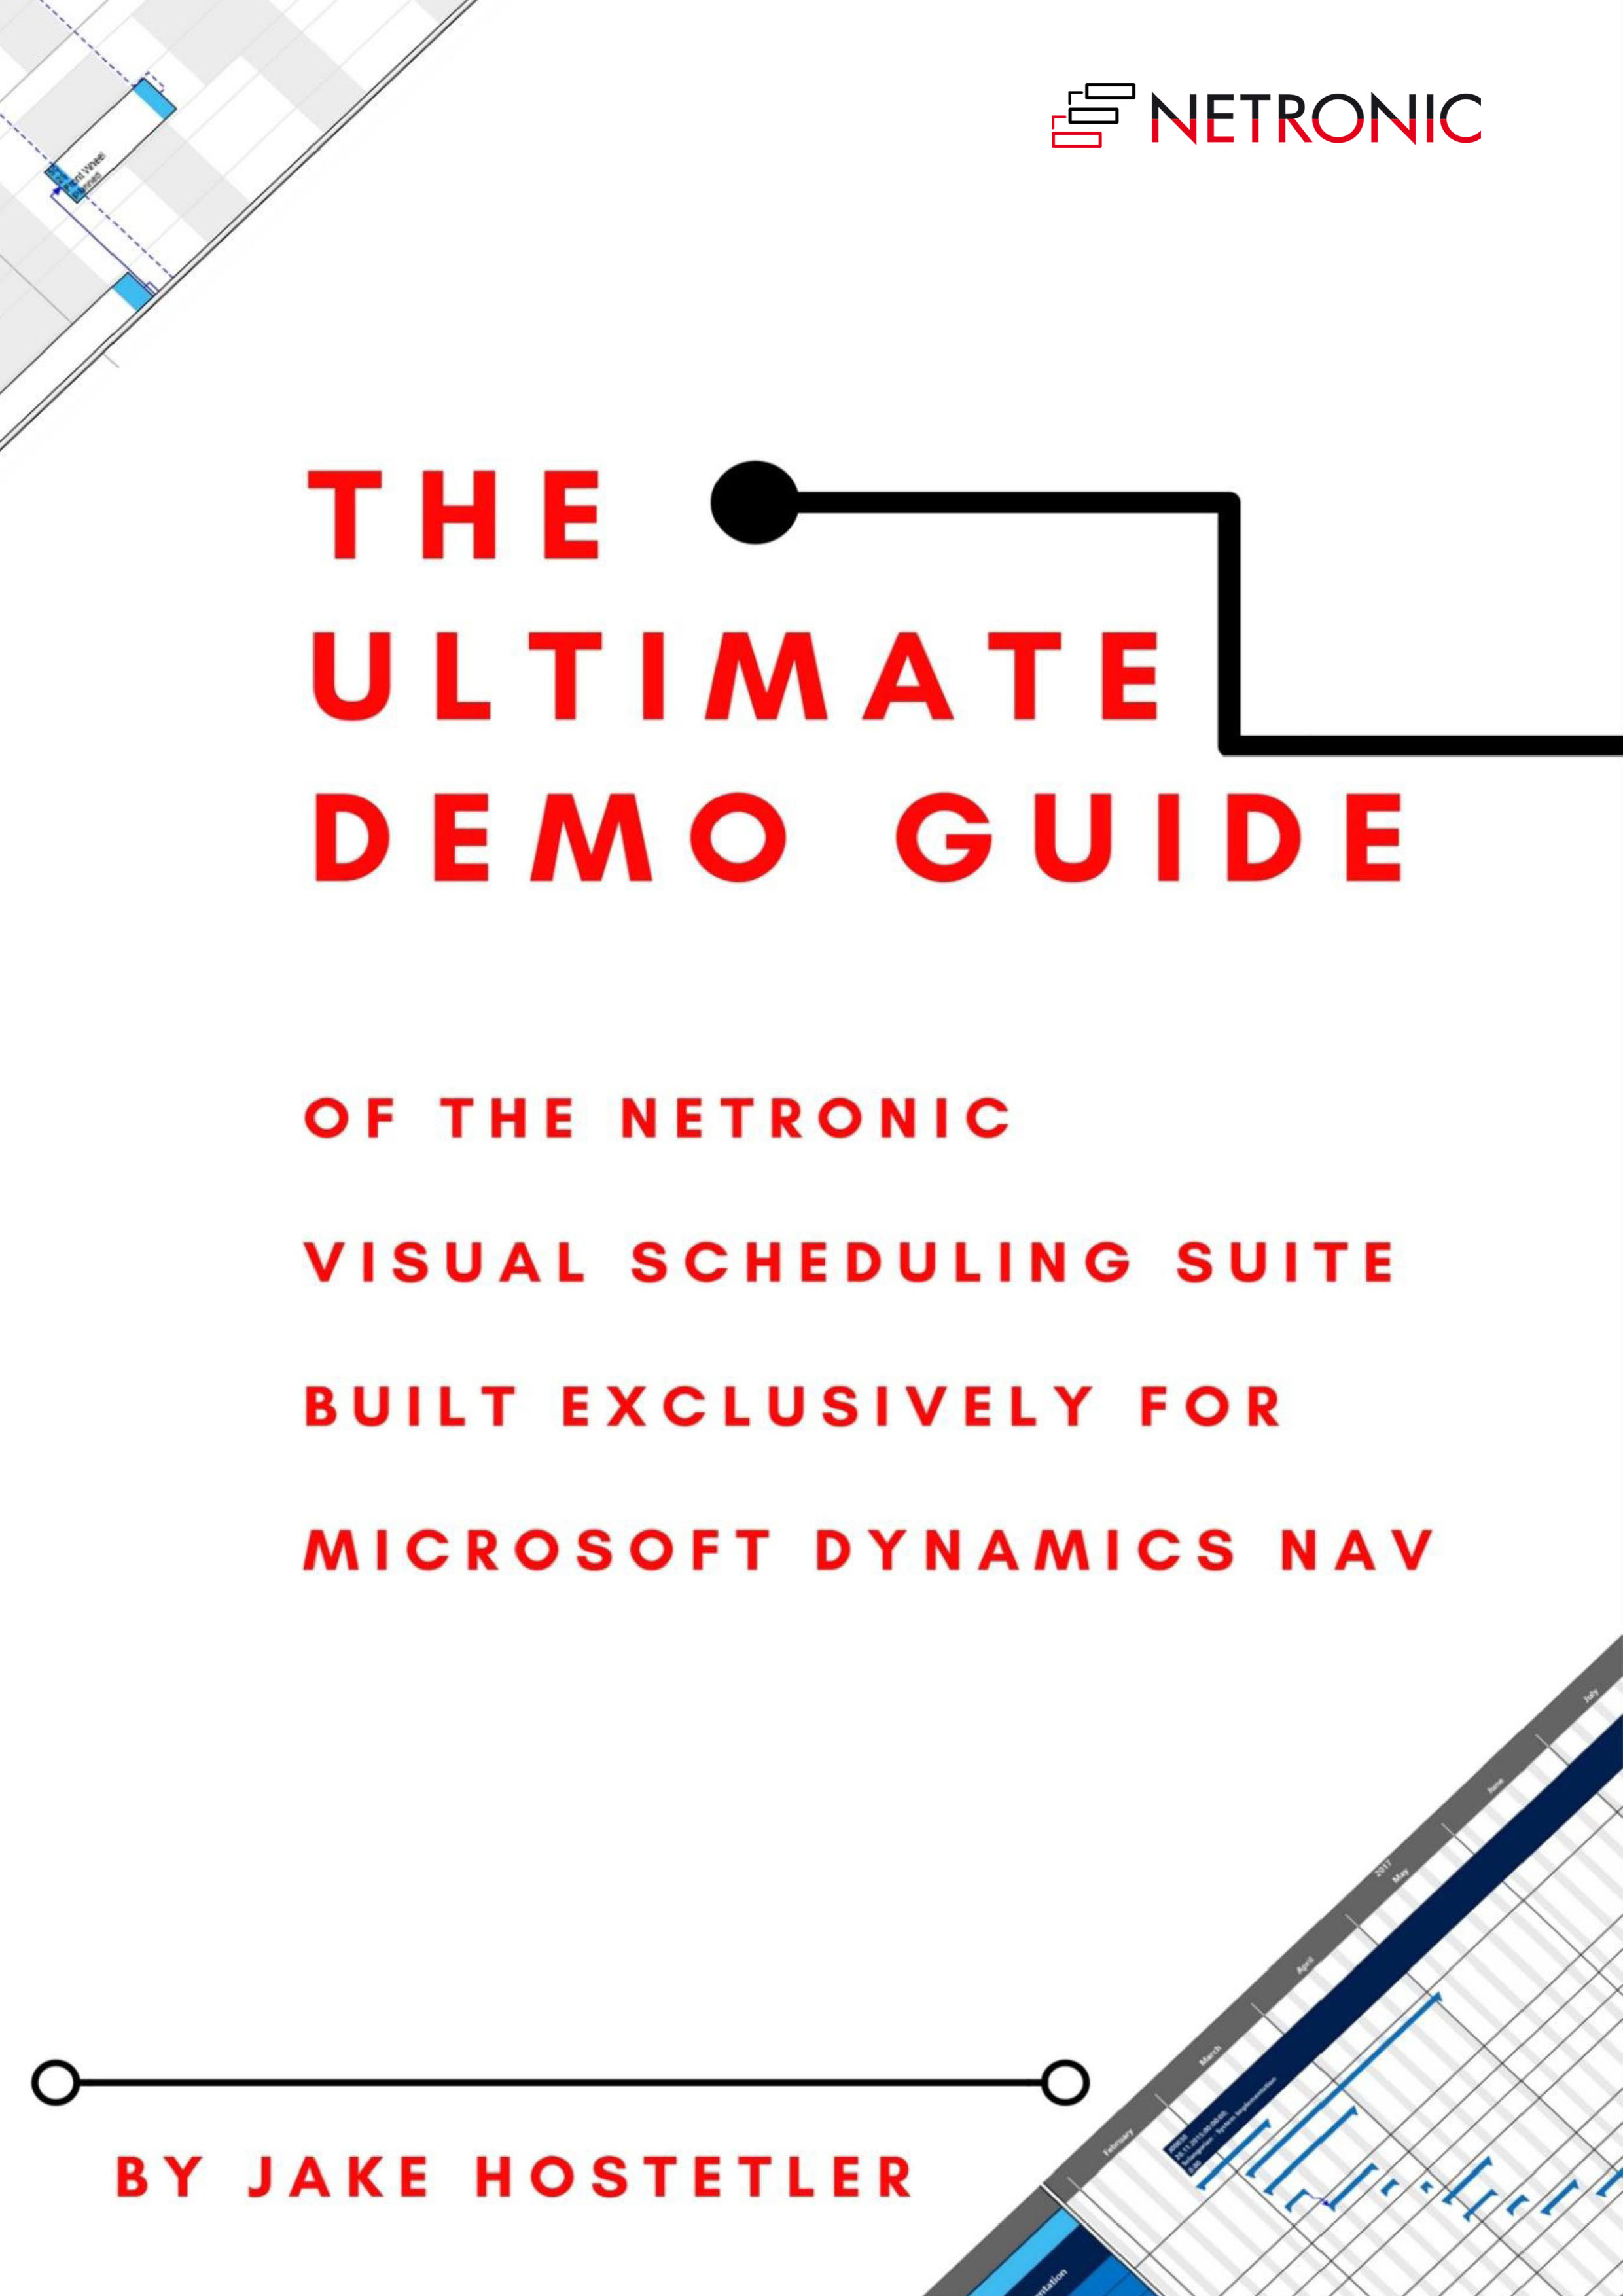 The NETRONIC Ultimate Demo Guide